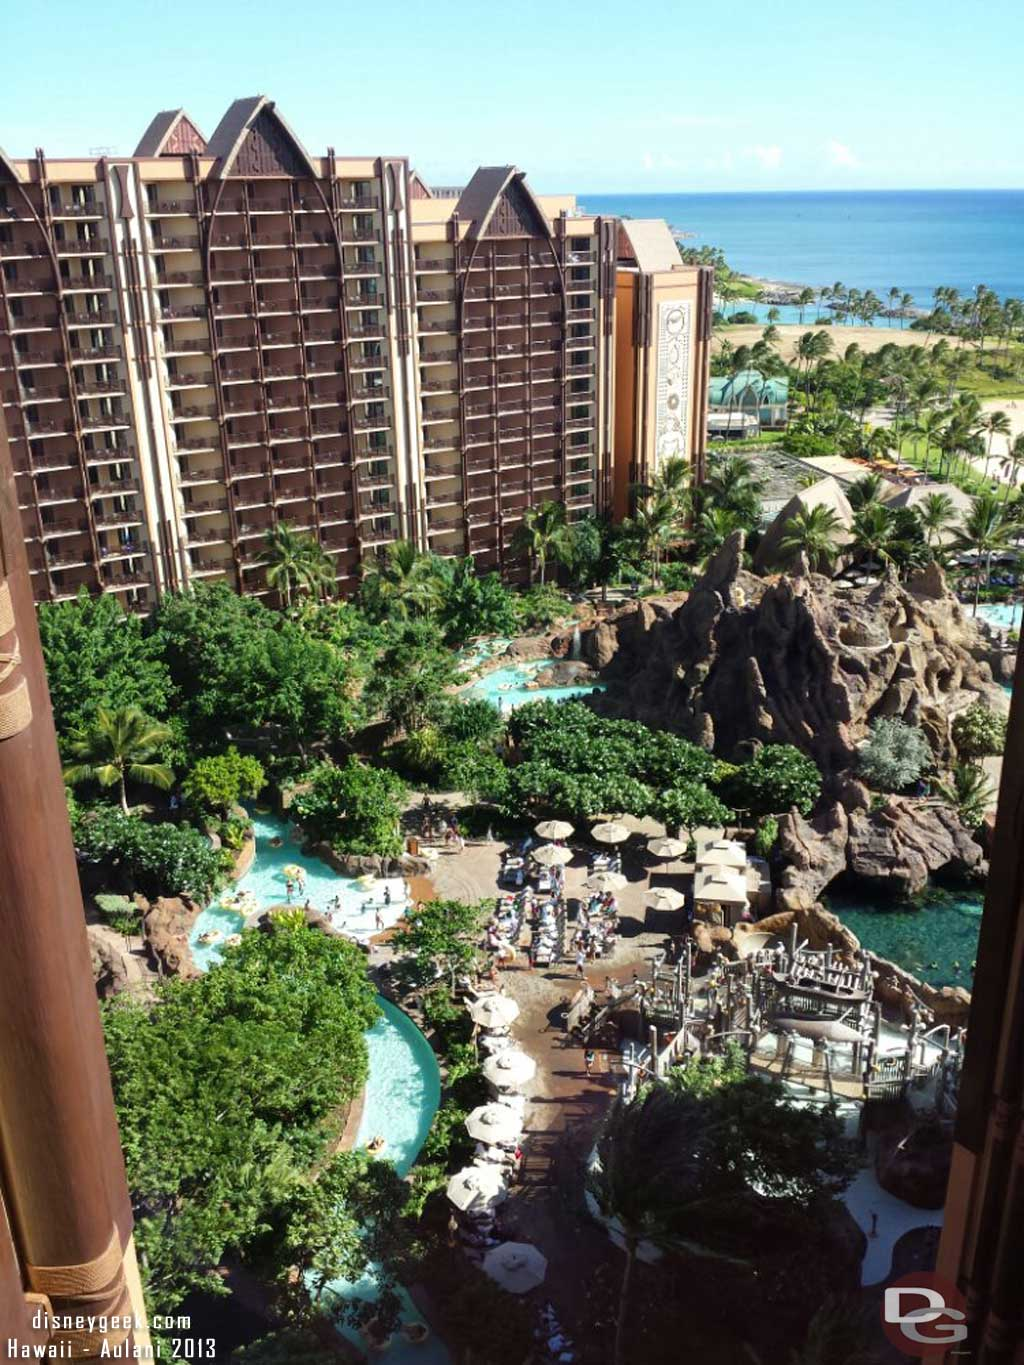 Waikolohe Valley from the 16th floor #Aulani